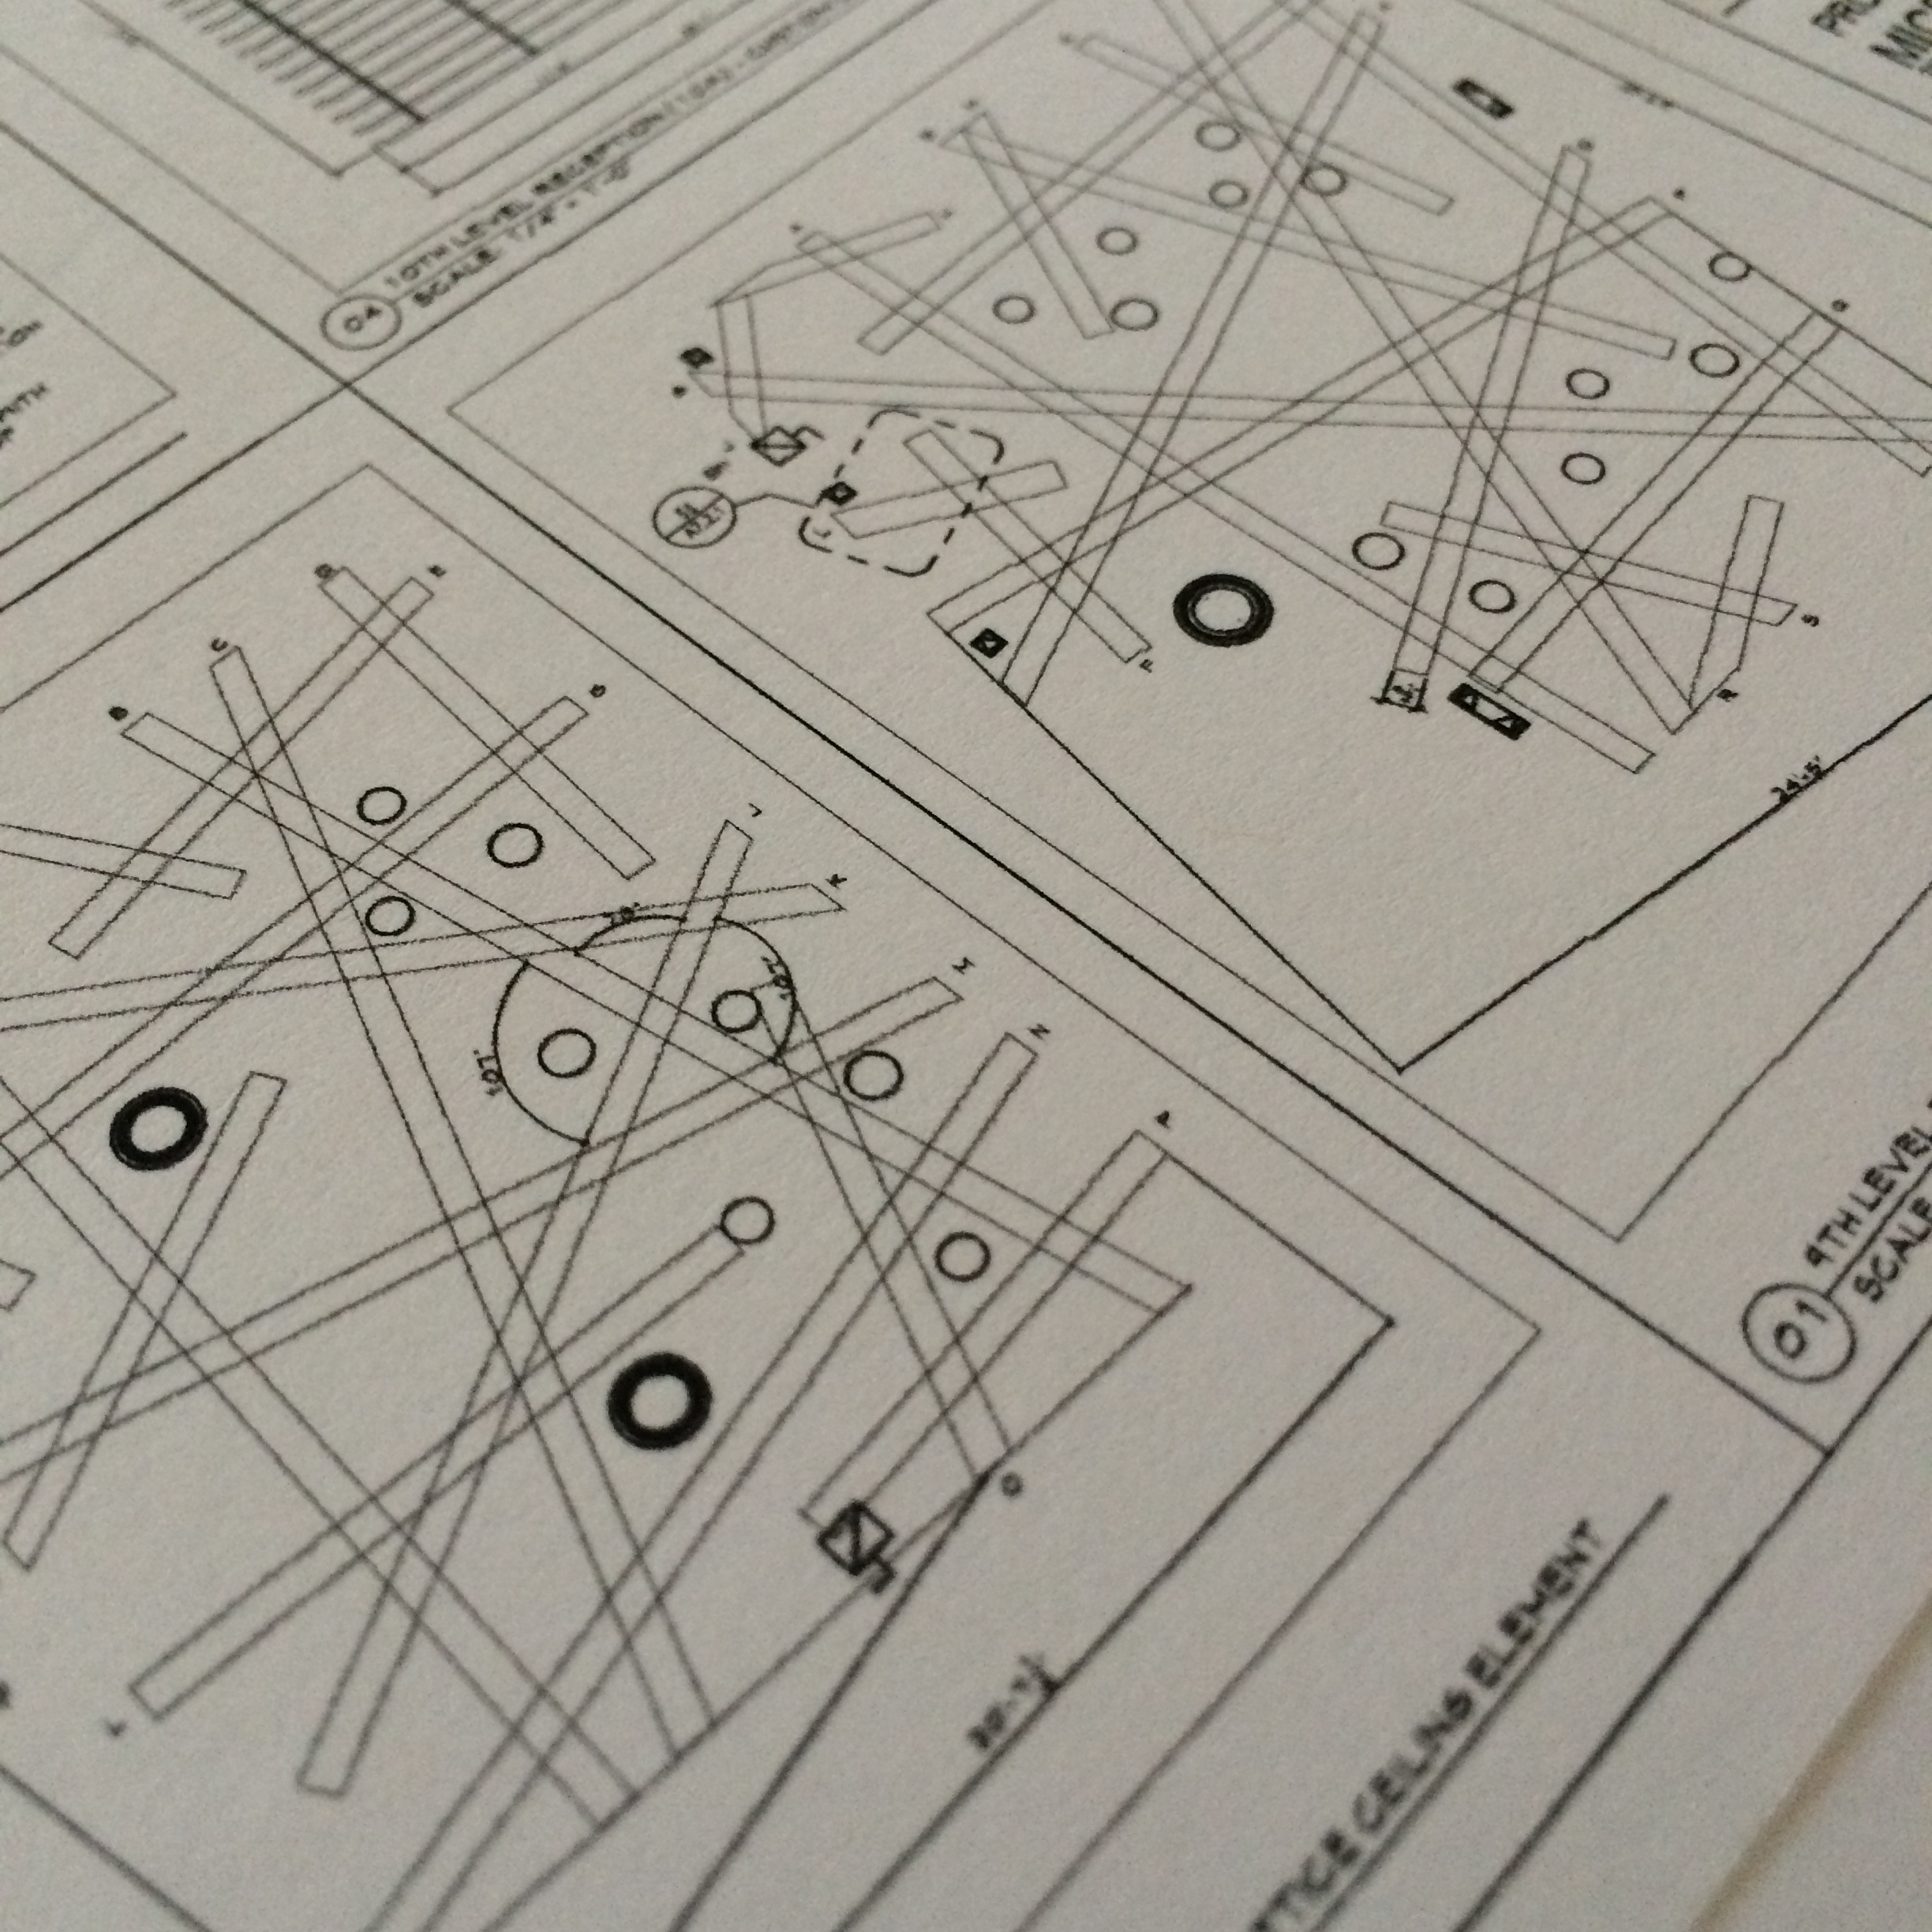 A sneak peek at the structure's shop drawing.